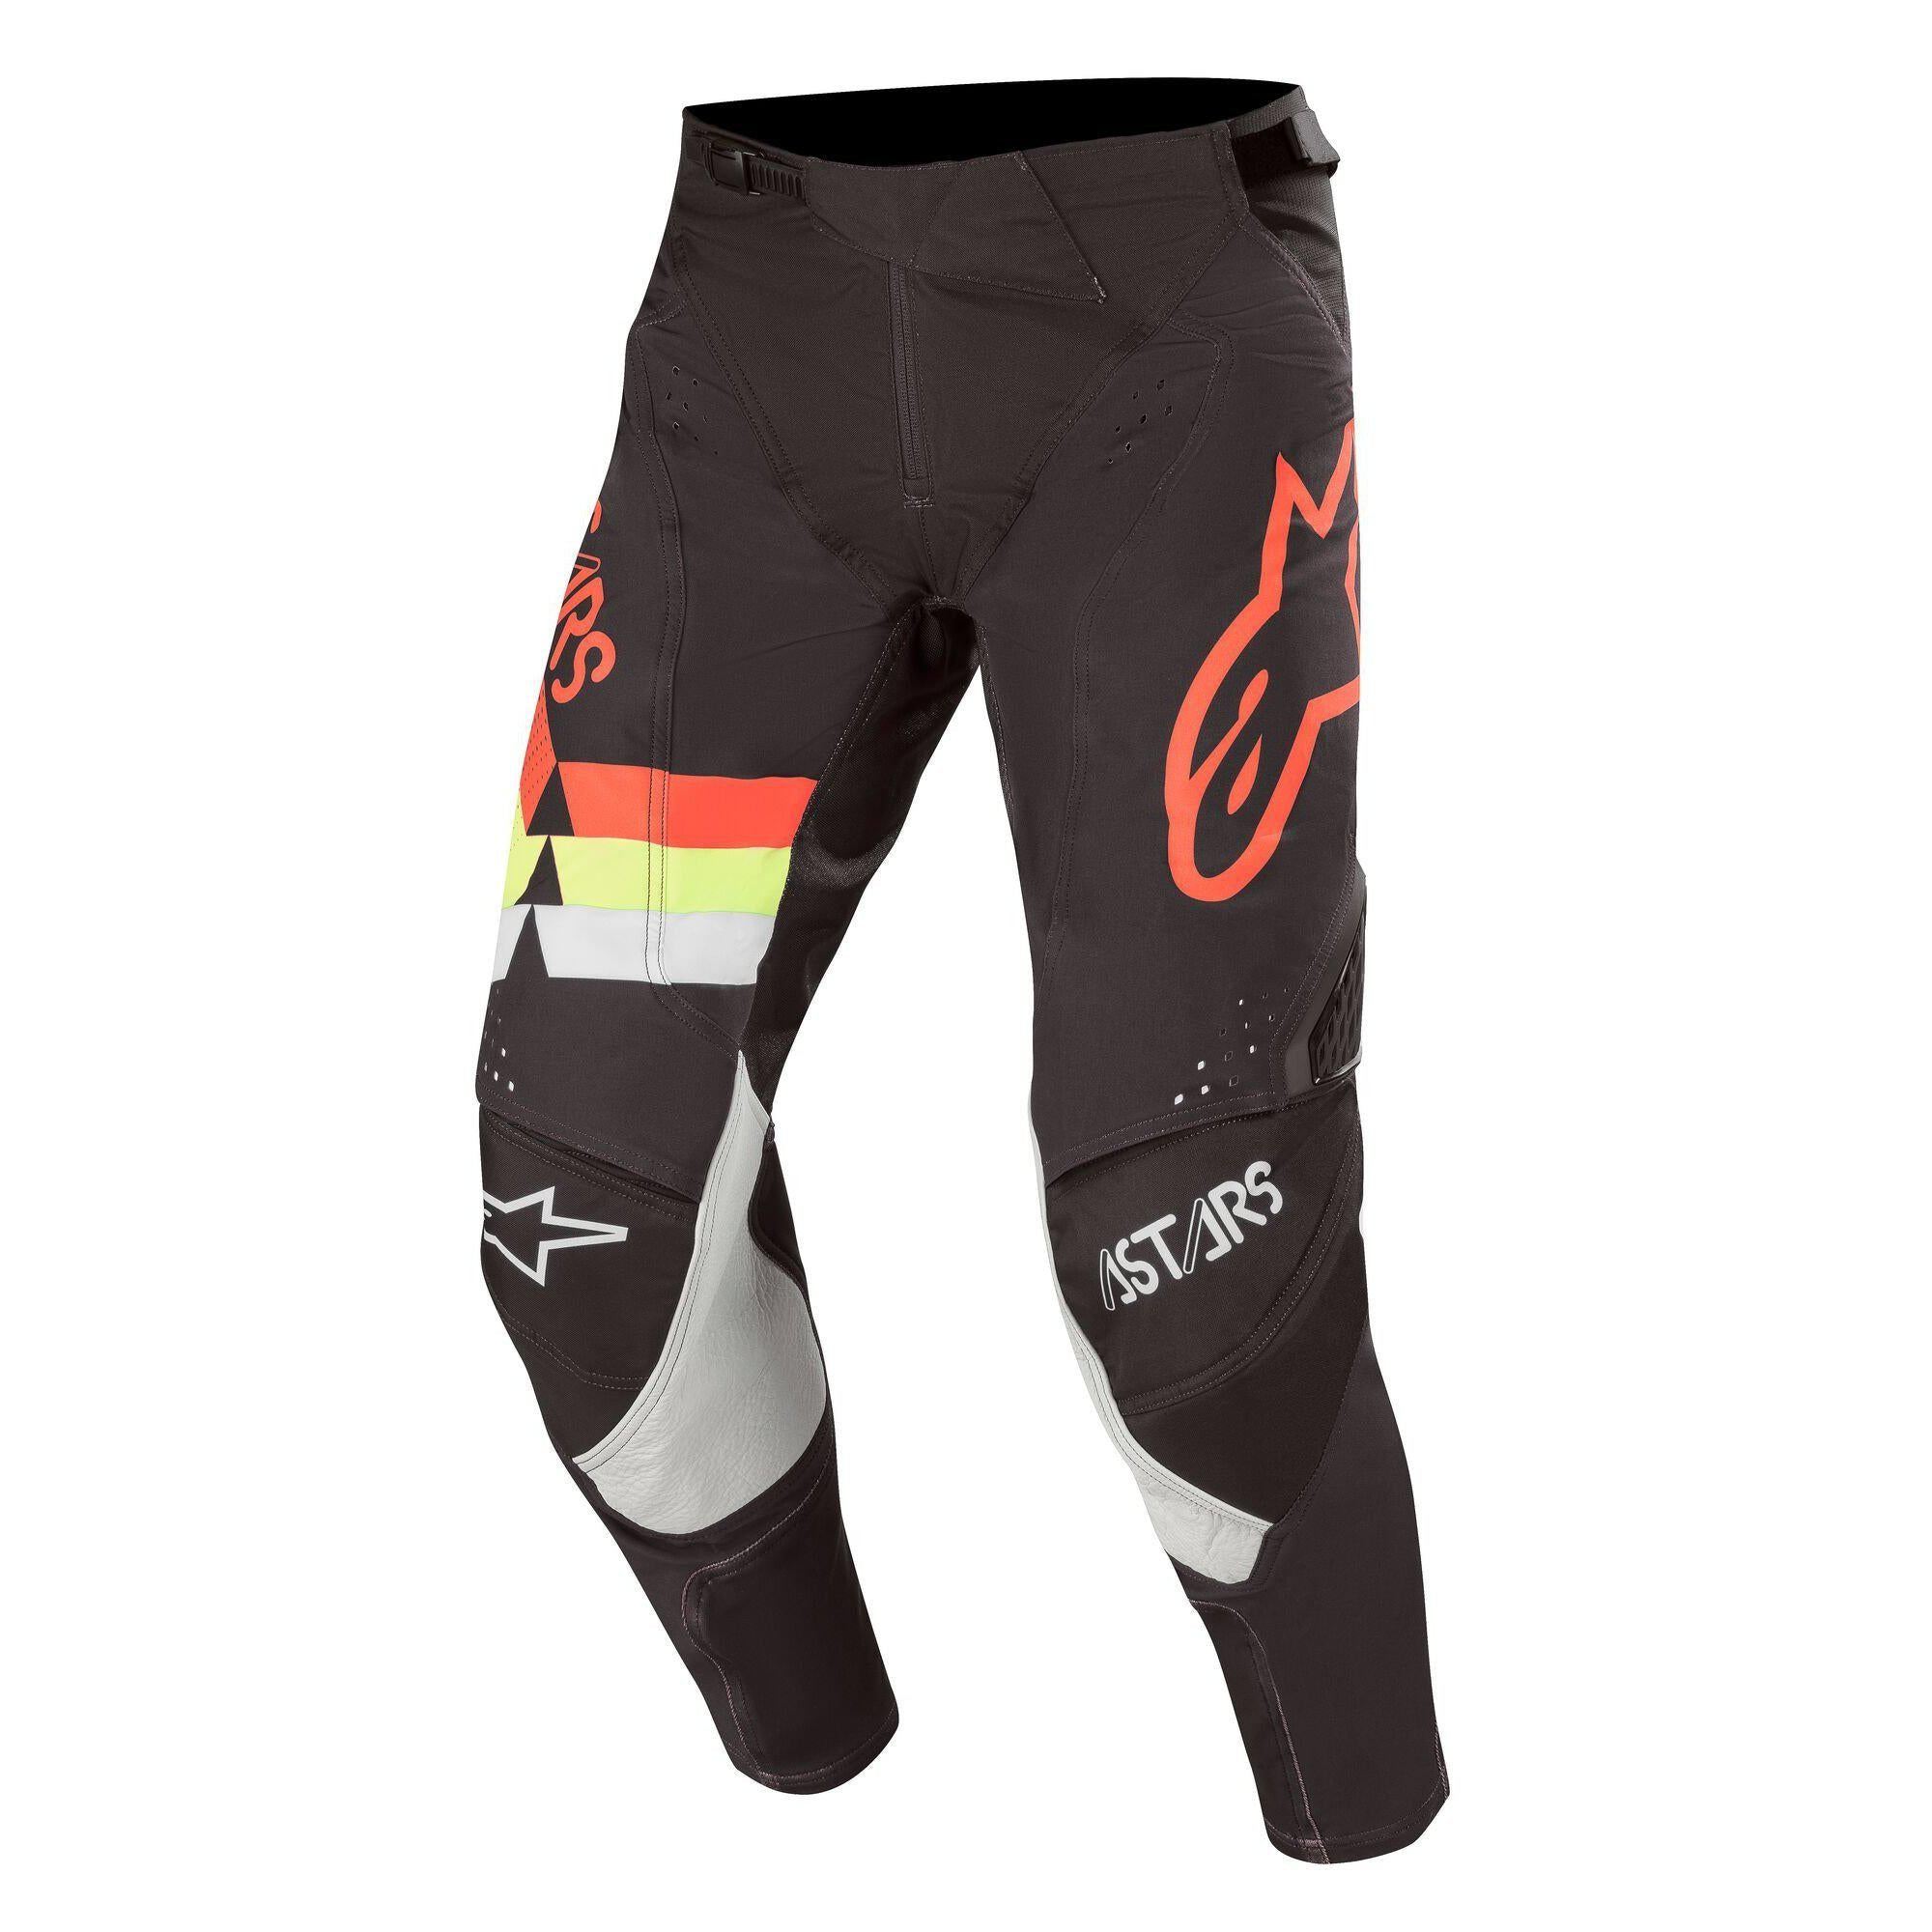 2020 Techstar Venom Pants